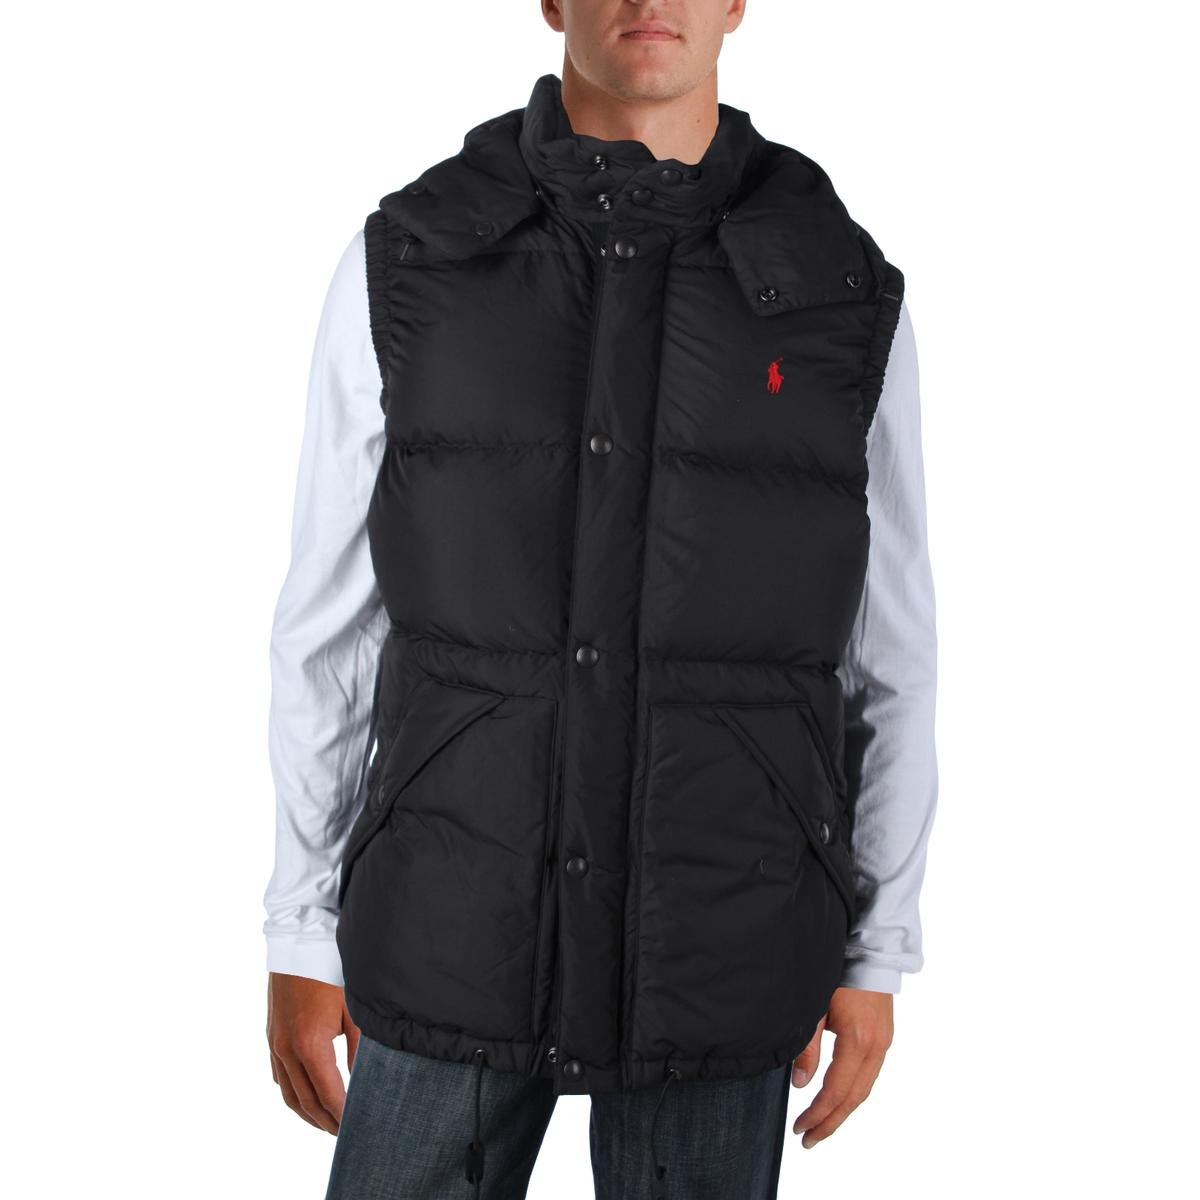 Polo Ralph Lauren Mens Big & Tall Quilted Sleeveless Vest Black XLT by Polo Ralph Lauren